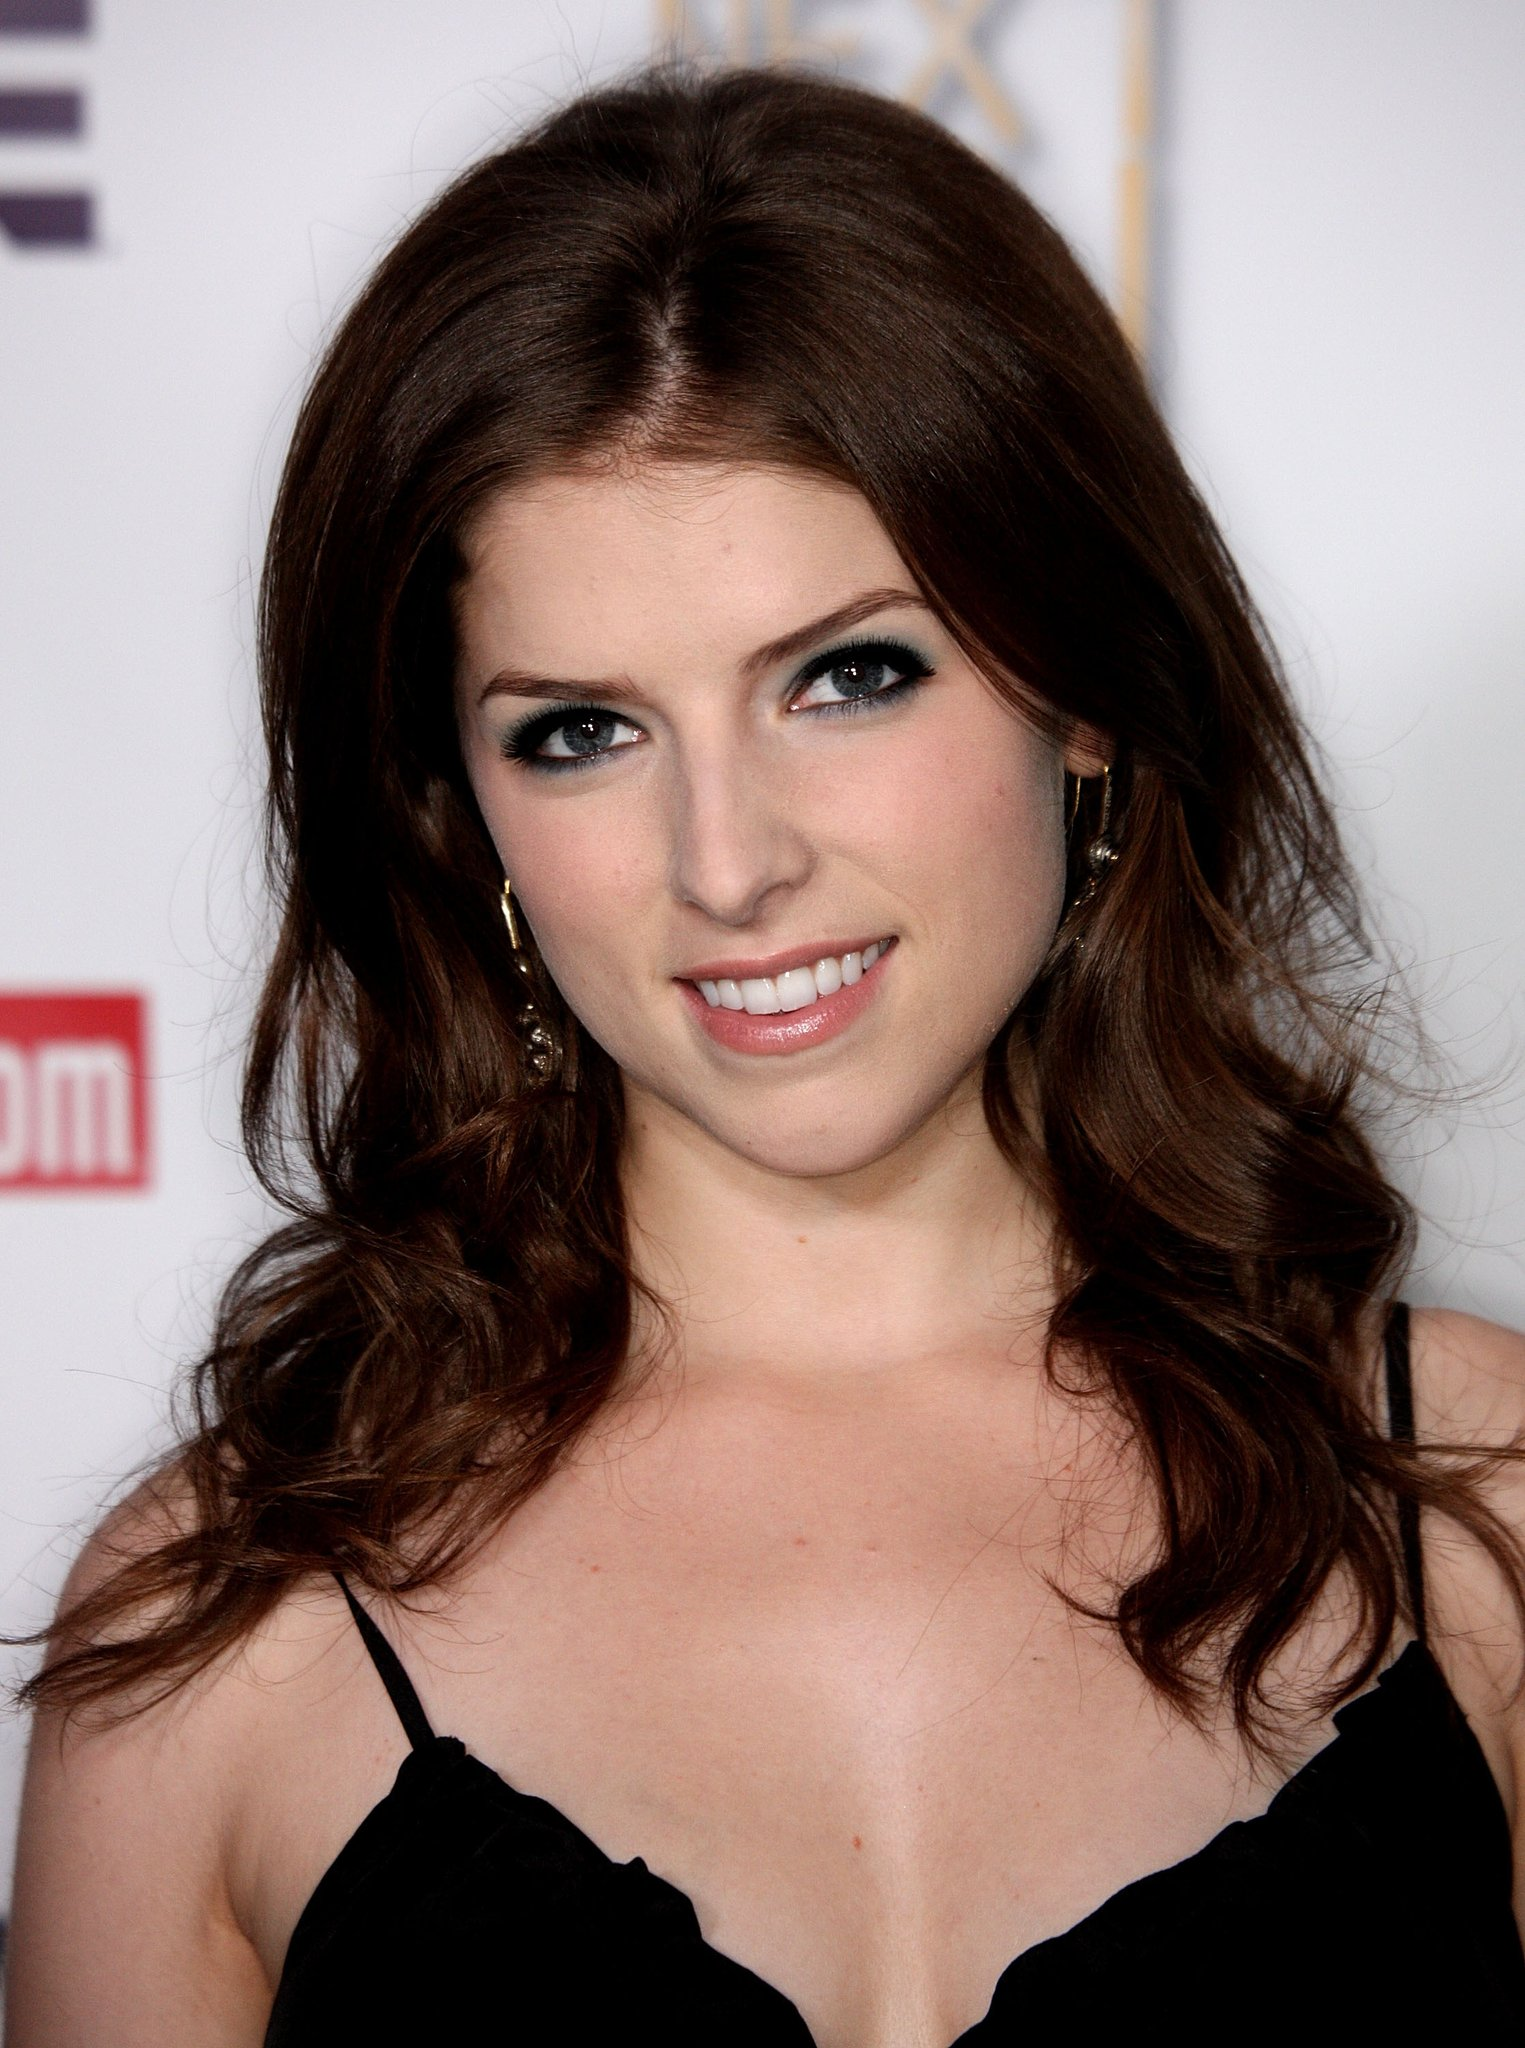 Happy Birthday to one of the best young actresses today, Anna Kendrick